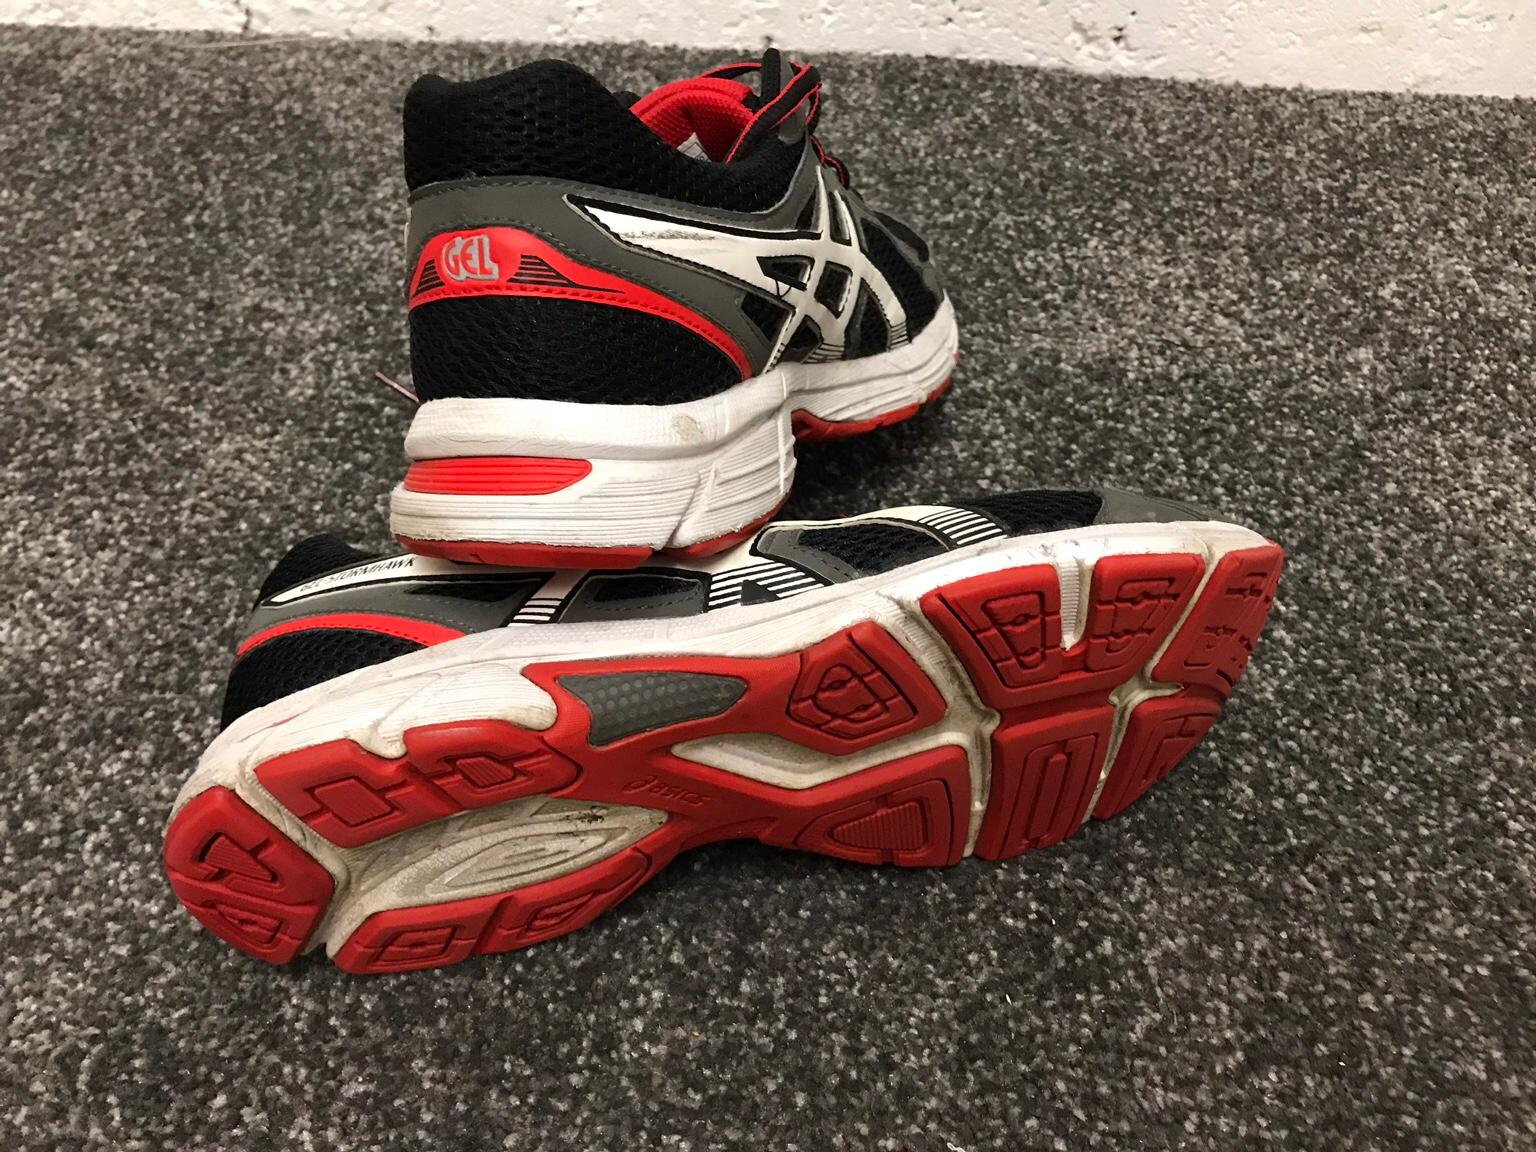 Men's trainers Black & red ASICS UK size 9,